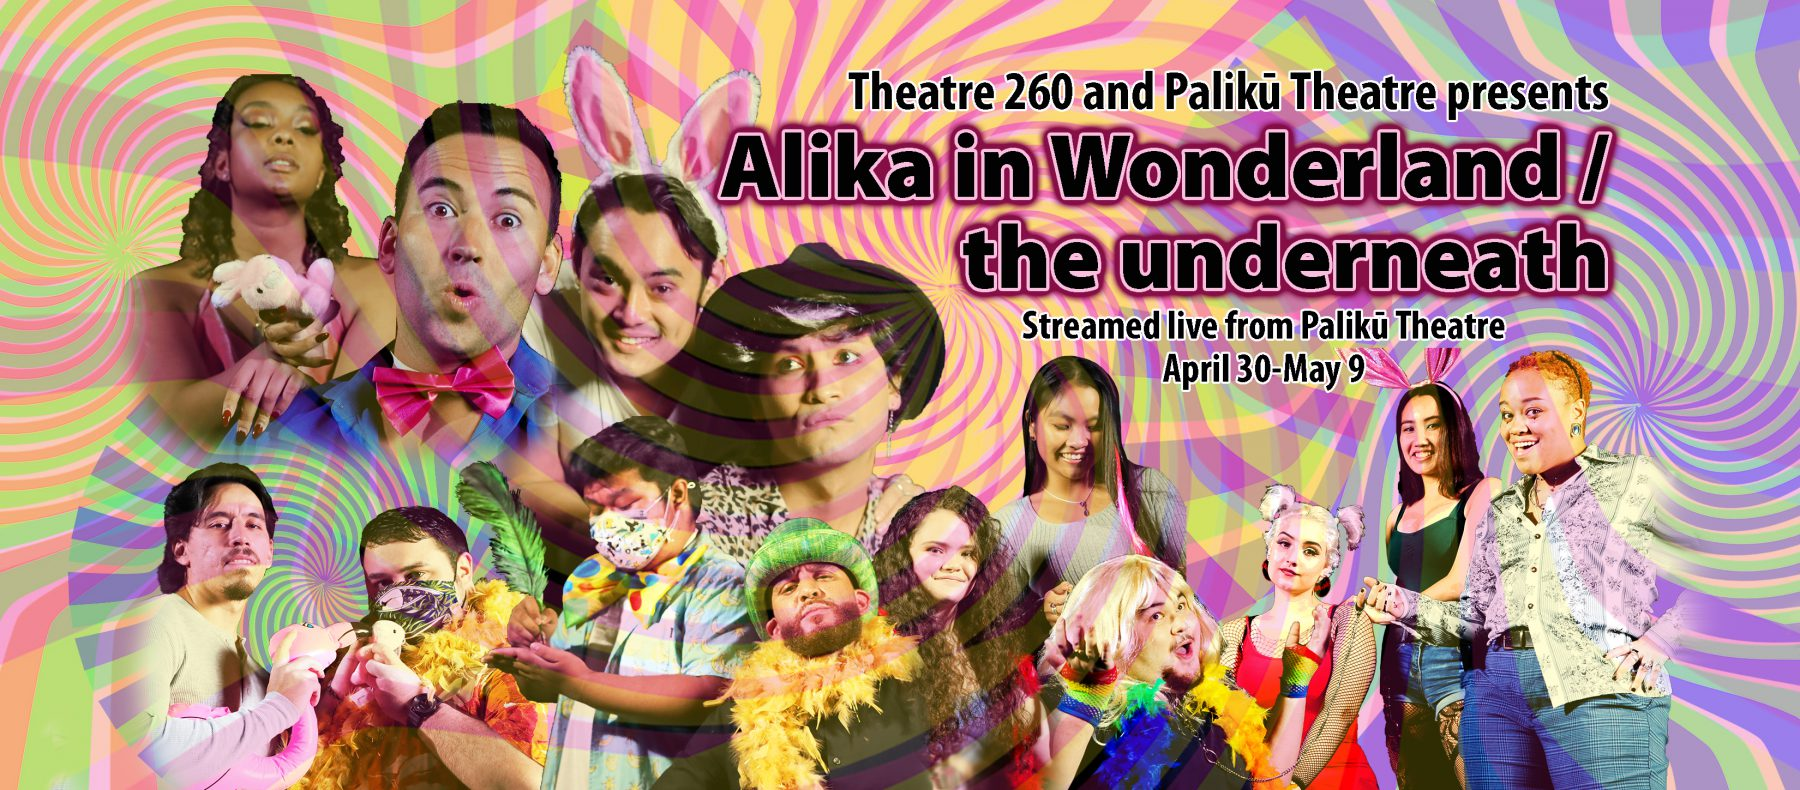 Alika in Wonderland cast with a rainbow spiral overlaid. Streamed live from the Palikū Theater April 30–May 9th